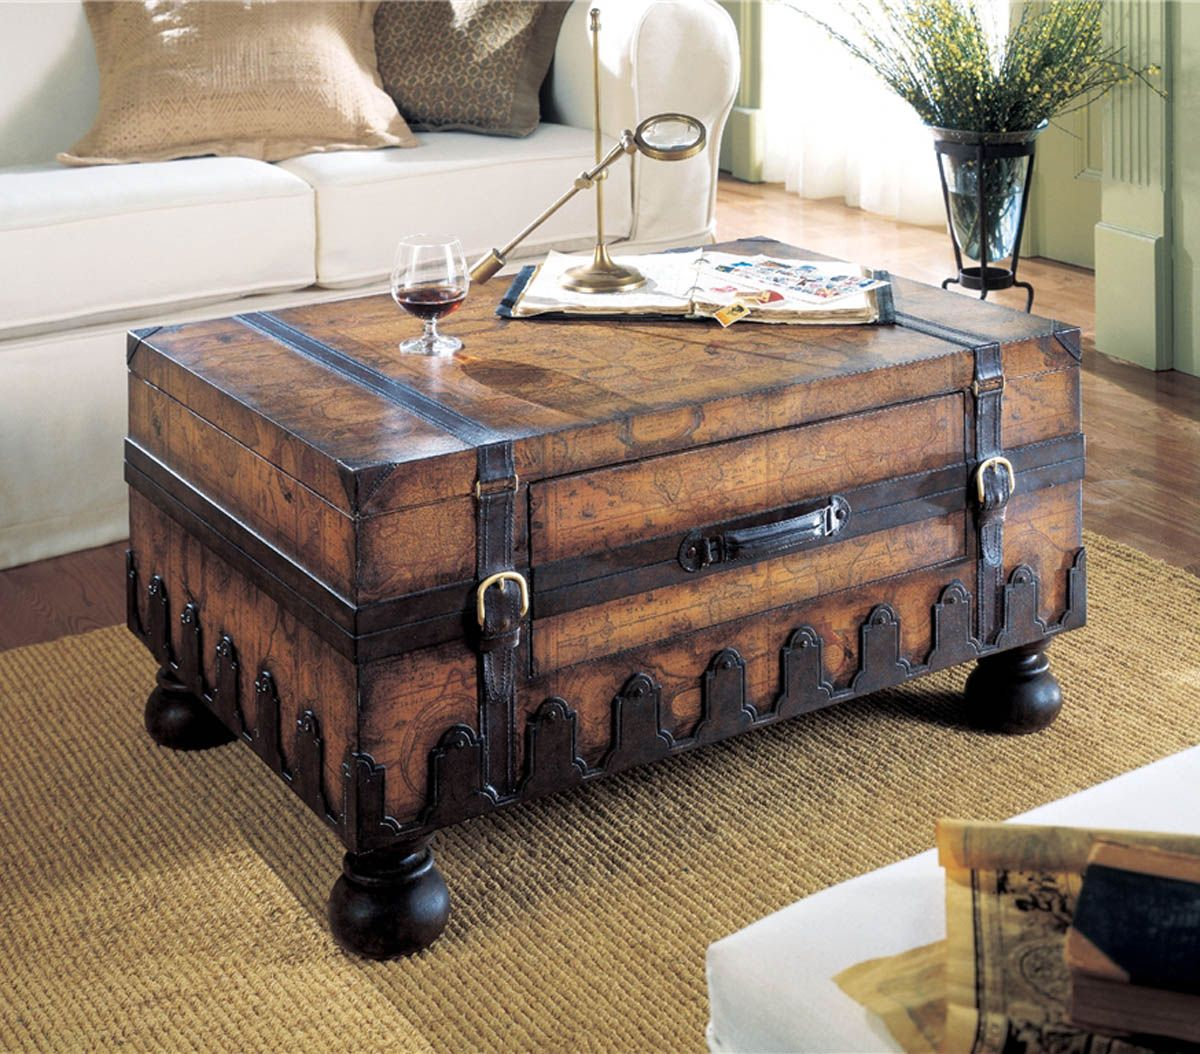 17 Old Trunks Turned Into Beautiful Vintage Table Sarah Trunk regarding proportions 1200 X 1054